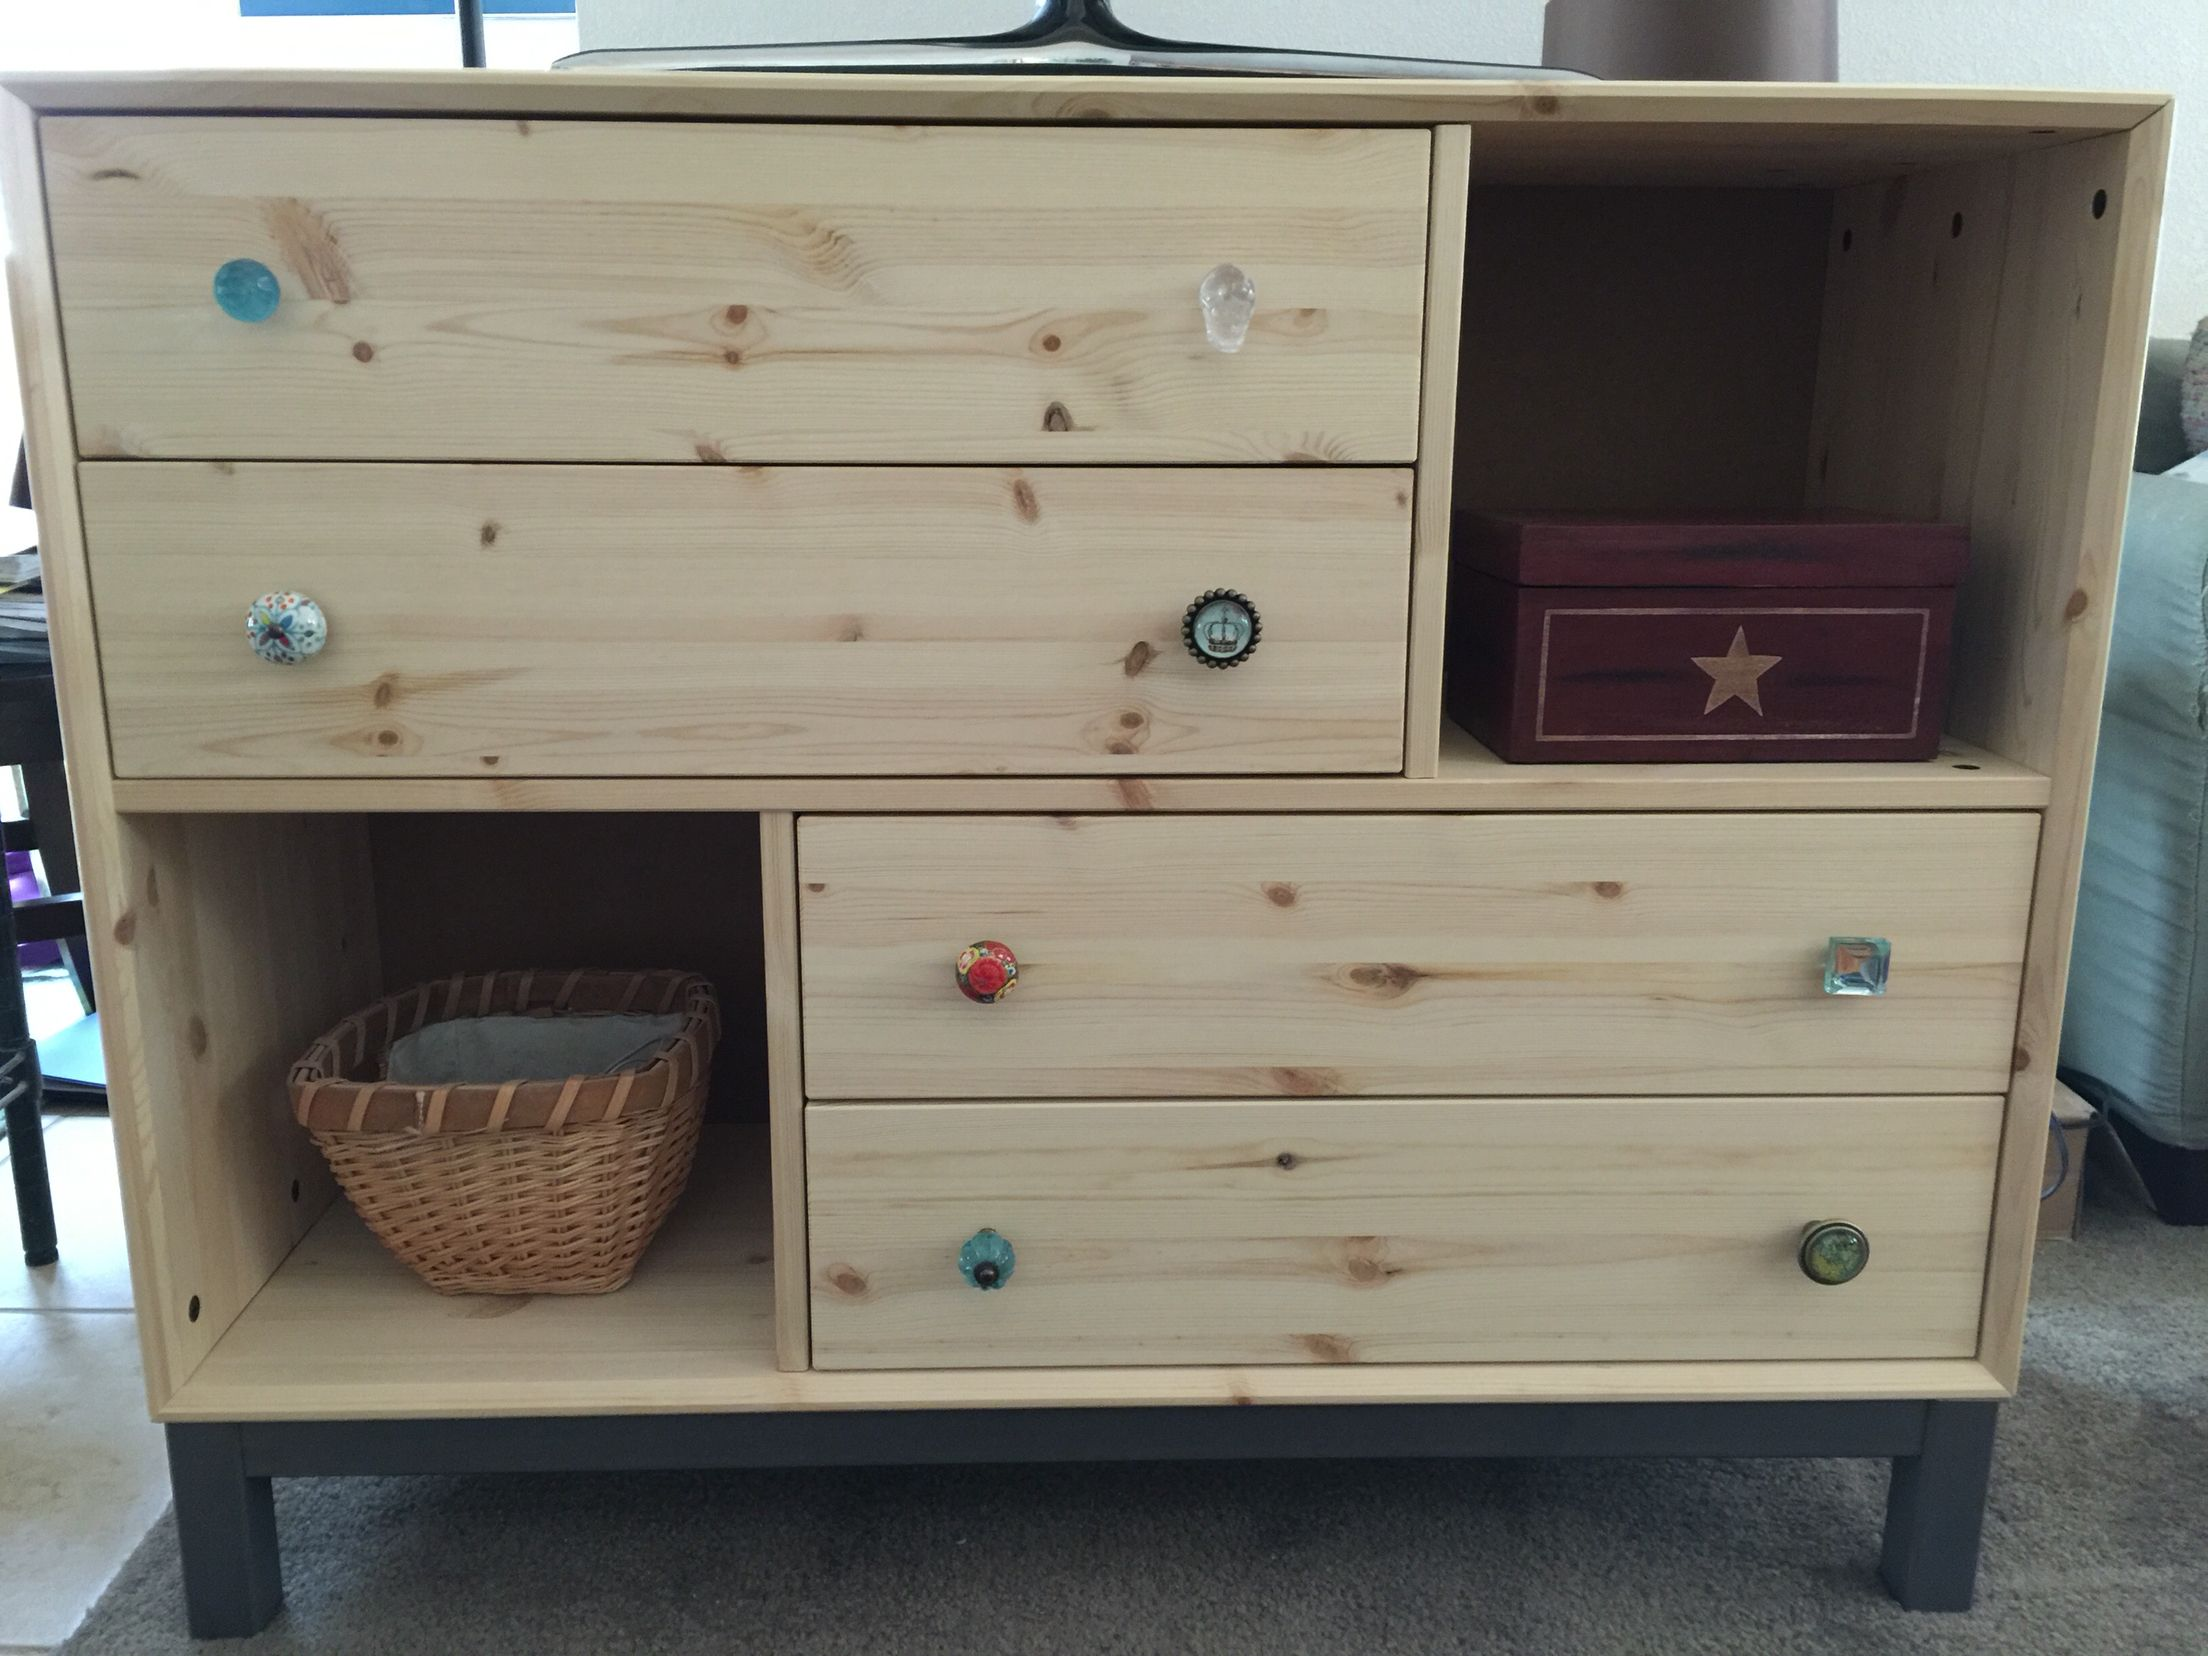 Nornas Ikea Ikea Nornas Chest With Accent Knobs Left Natural For Now